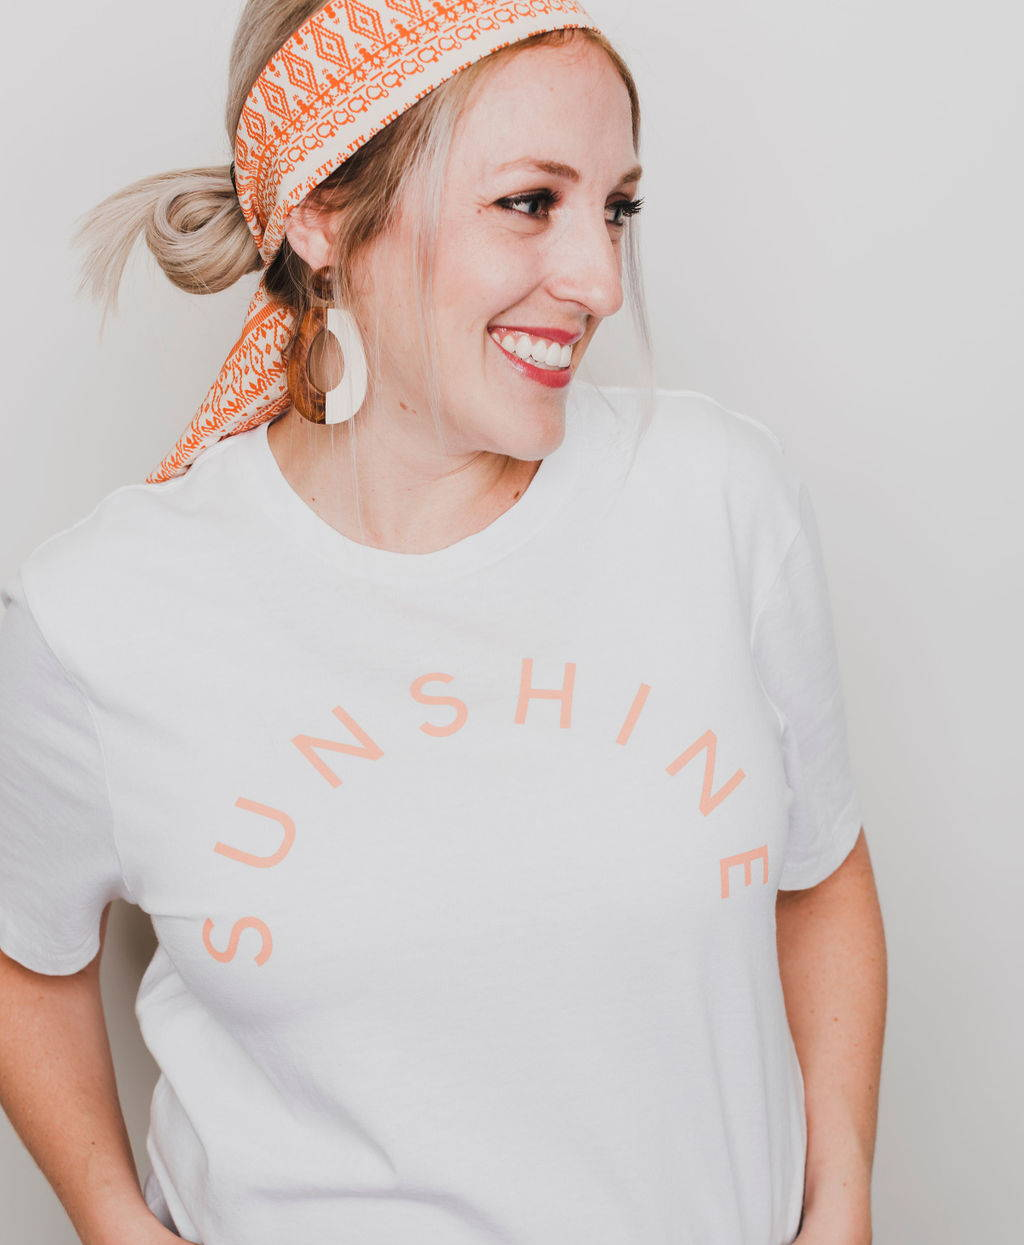 Inspirational T-Shirts: 8 Reasons We Can't Live Without Them – Flybird Apparel